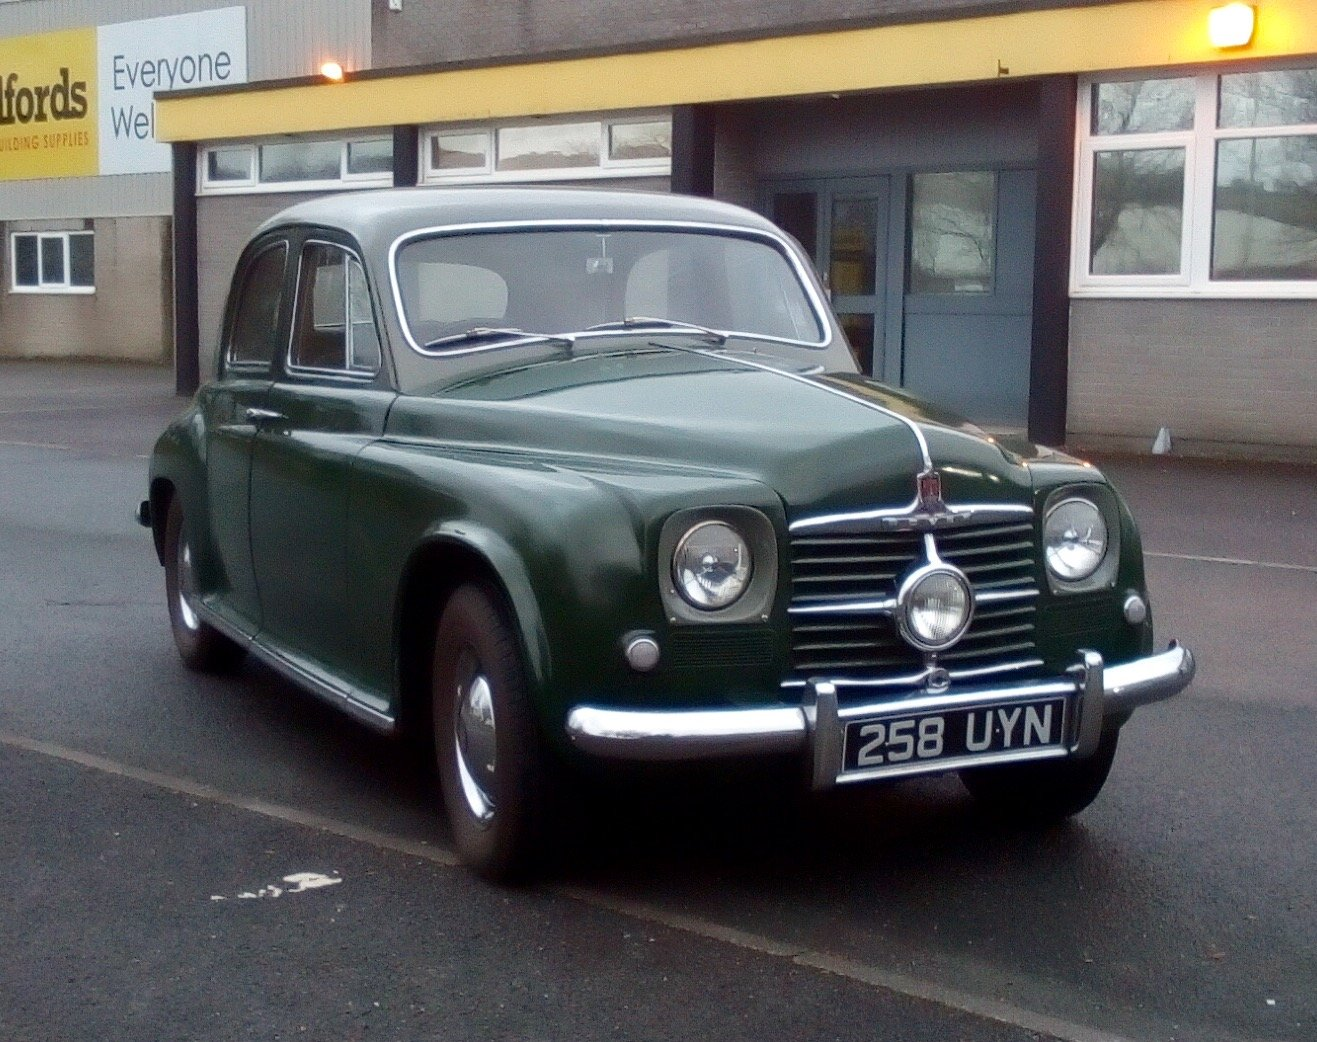 RARE-1951 ROVER 75 SPORTS SALOON.FULLY ROAD WORTHY For Sale (picture 1 of 6)